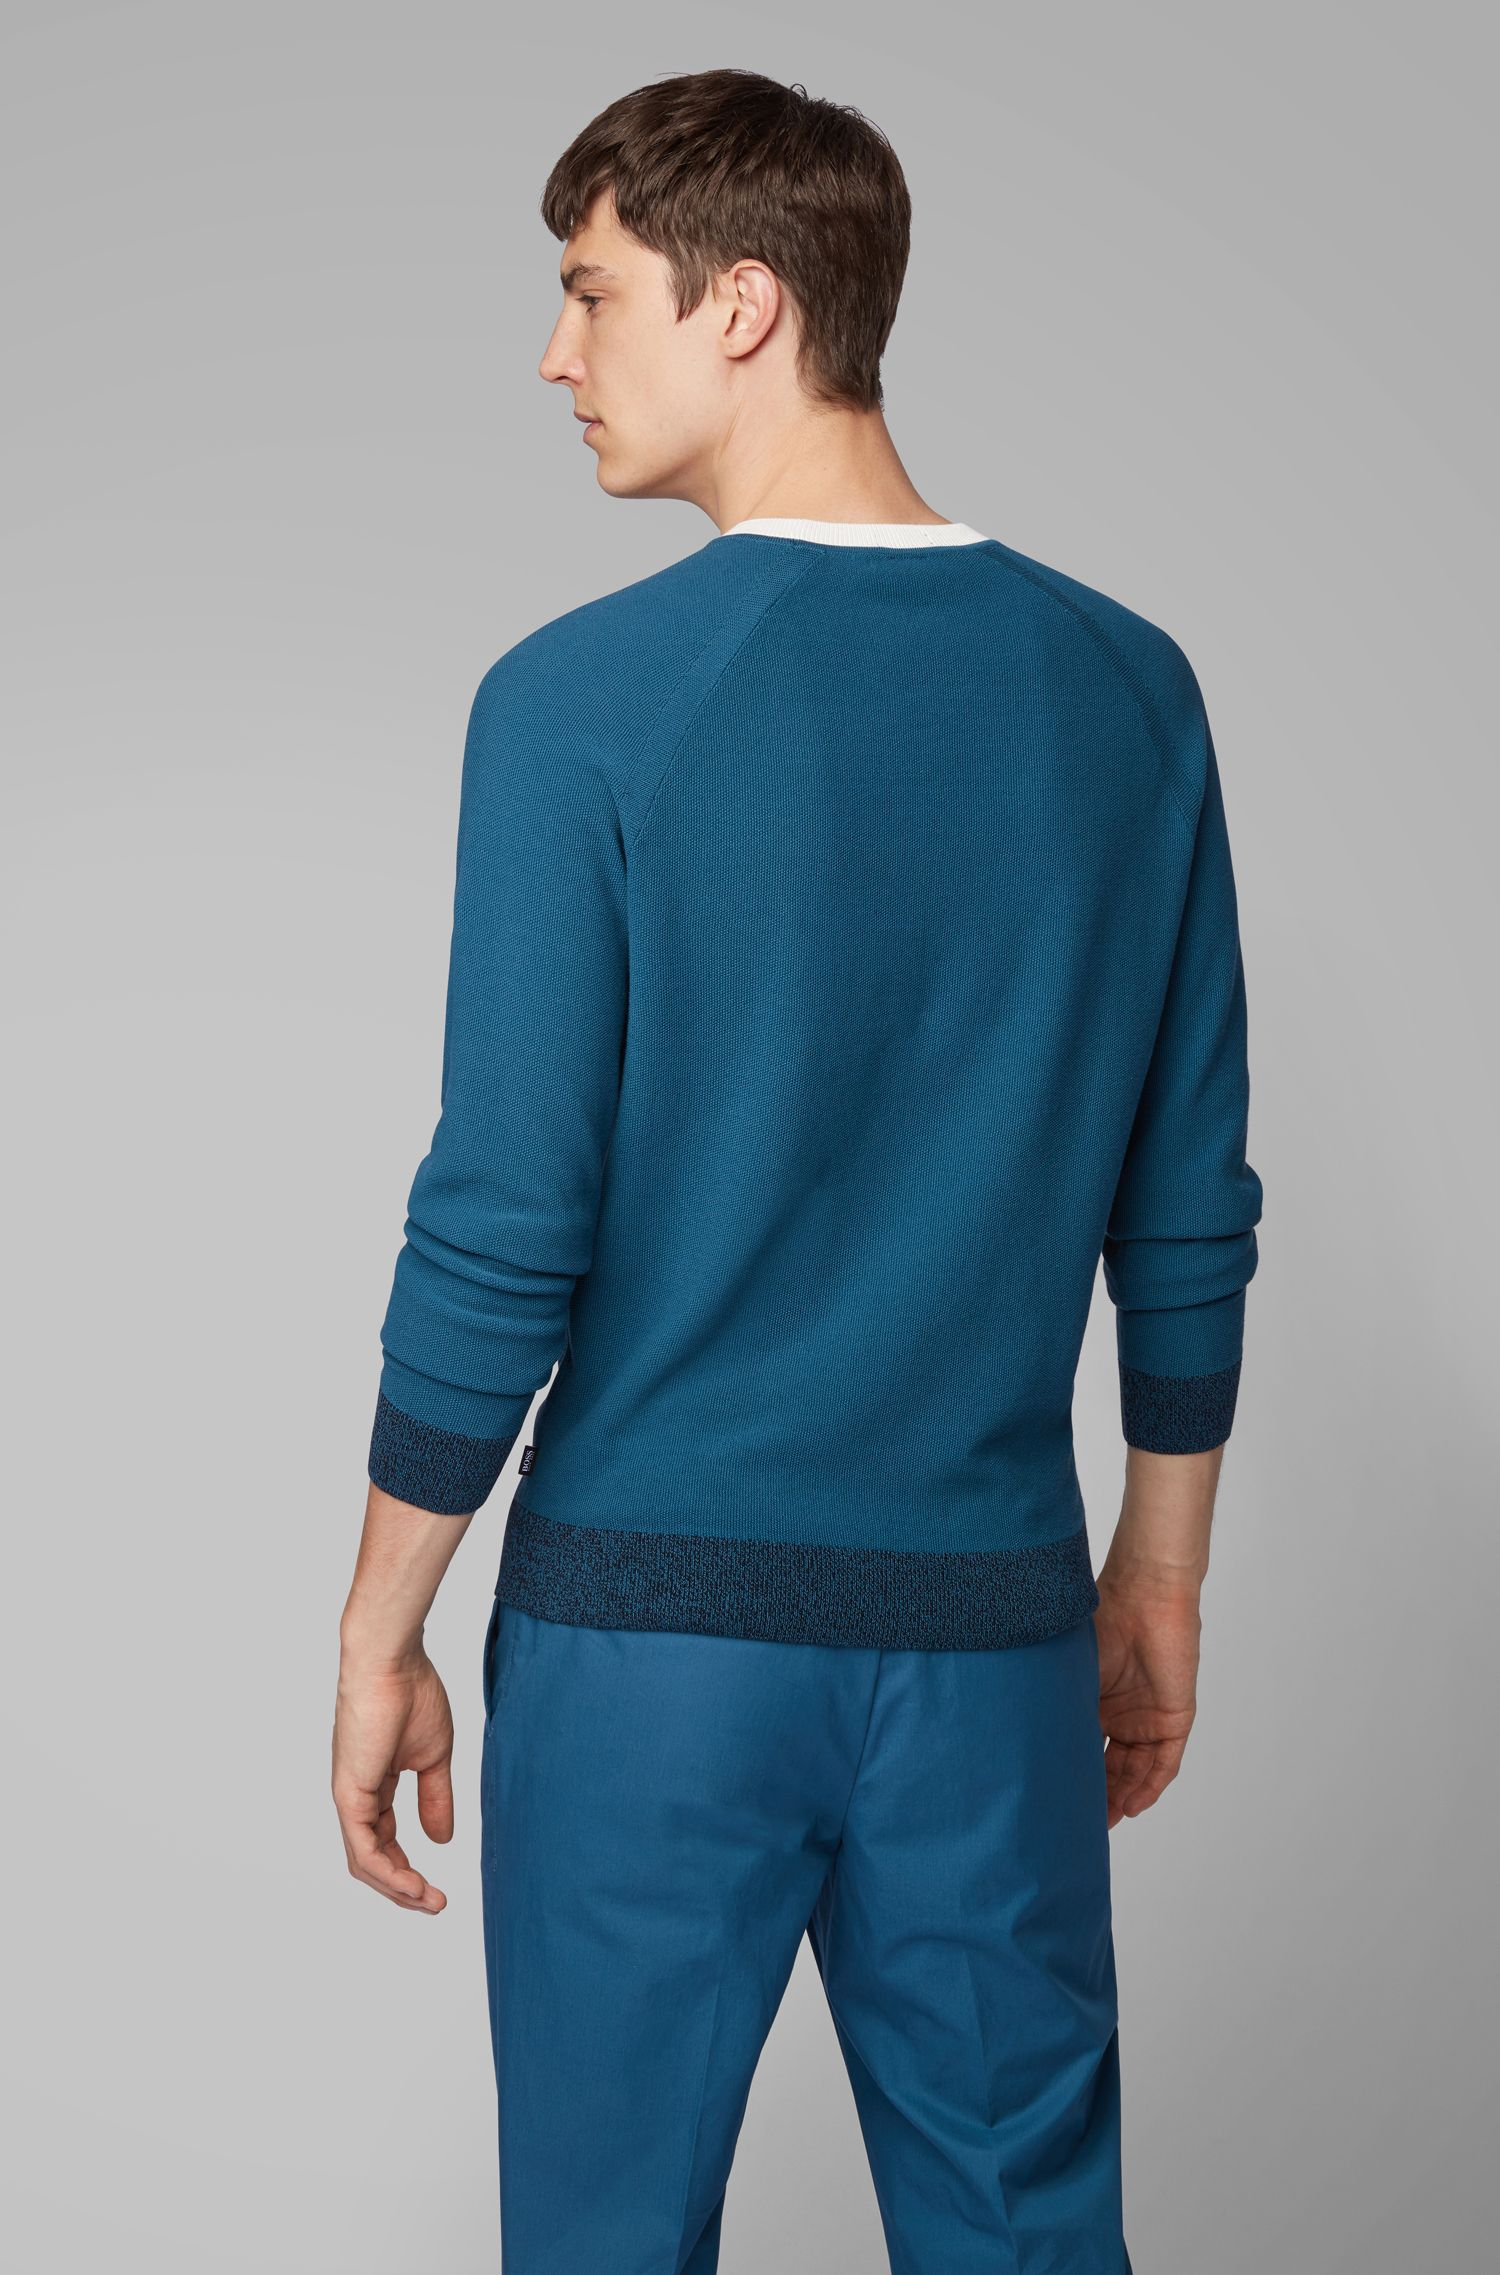 Knitted sweater in Italian Pima cotton with contrast details, Blue